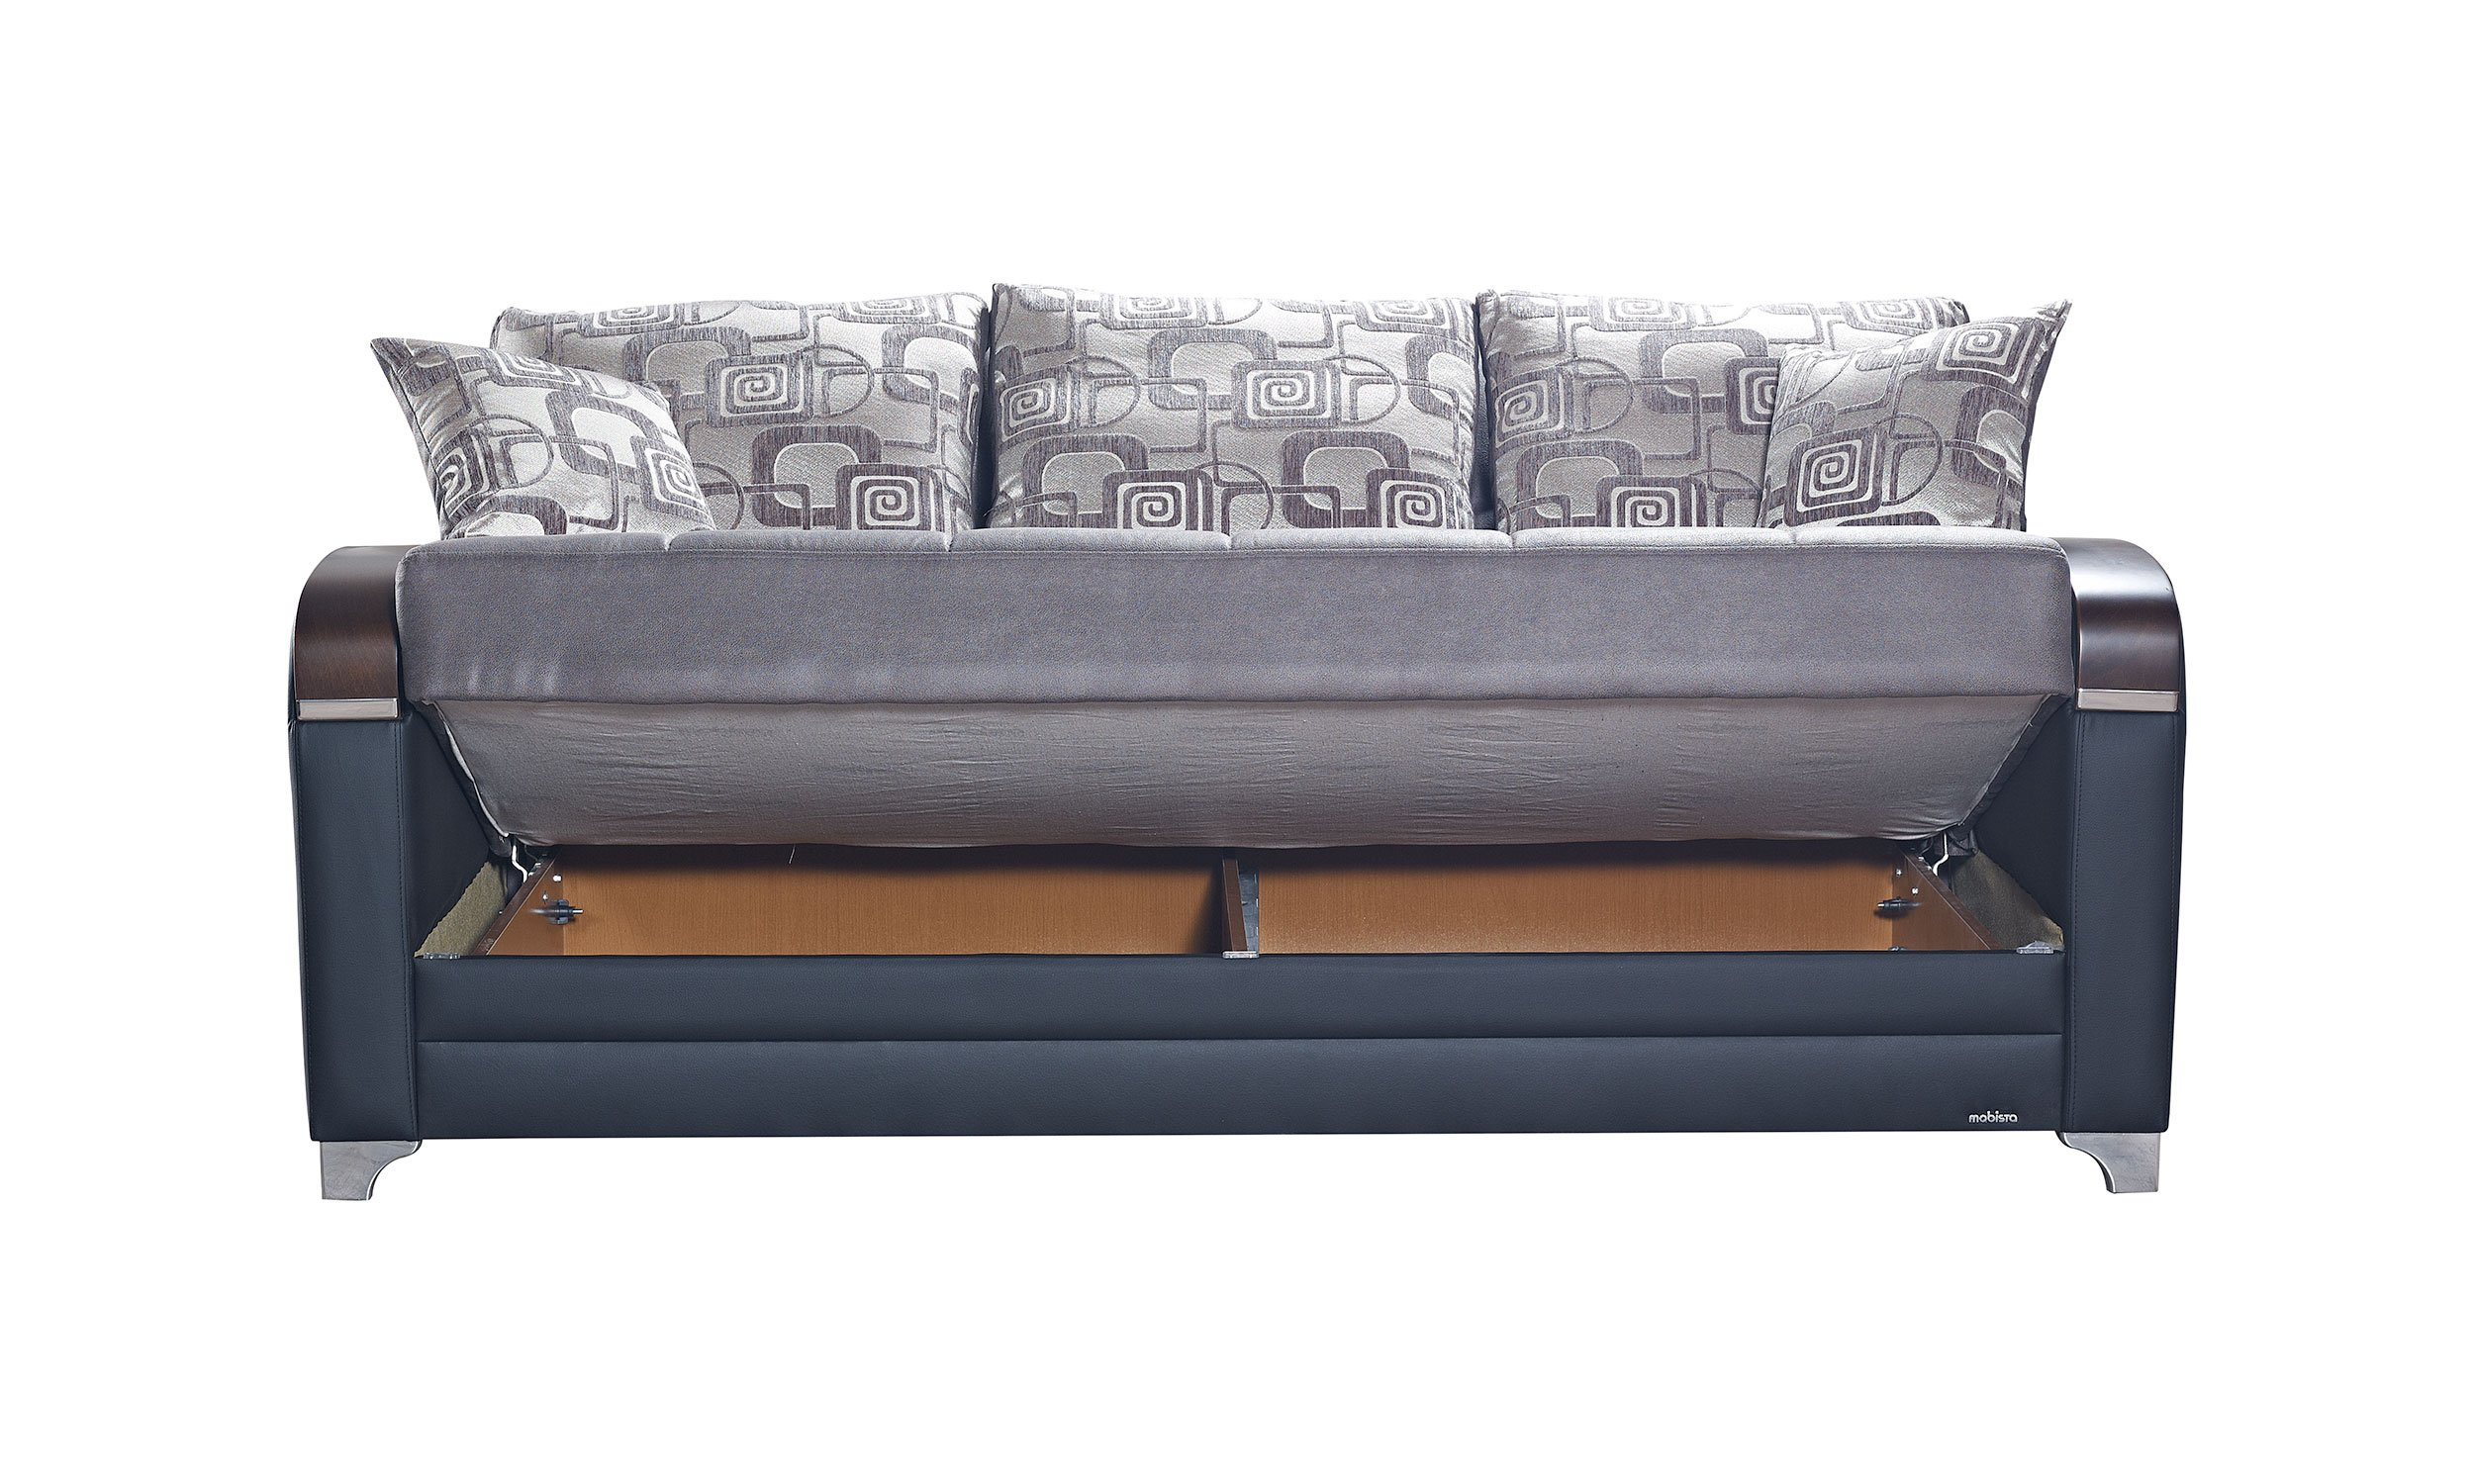 Mobetto Vintage Gray Fabric Sofa Bed